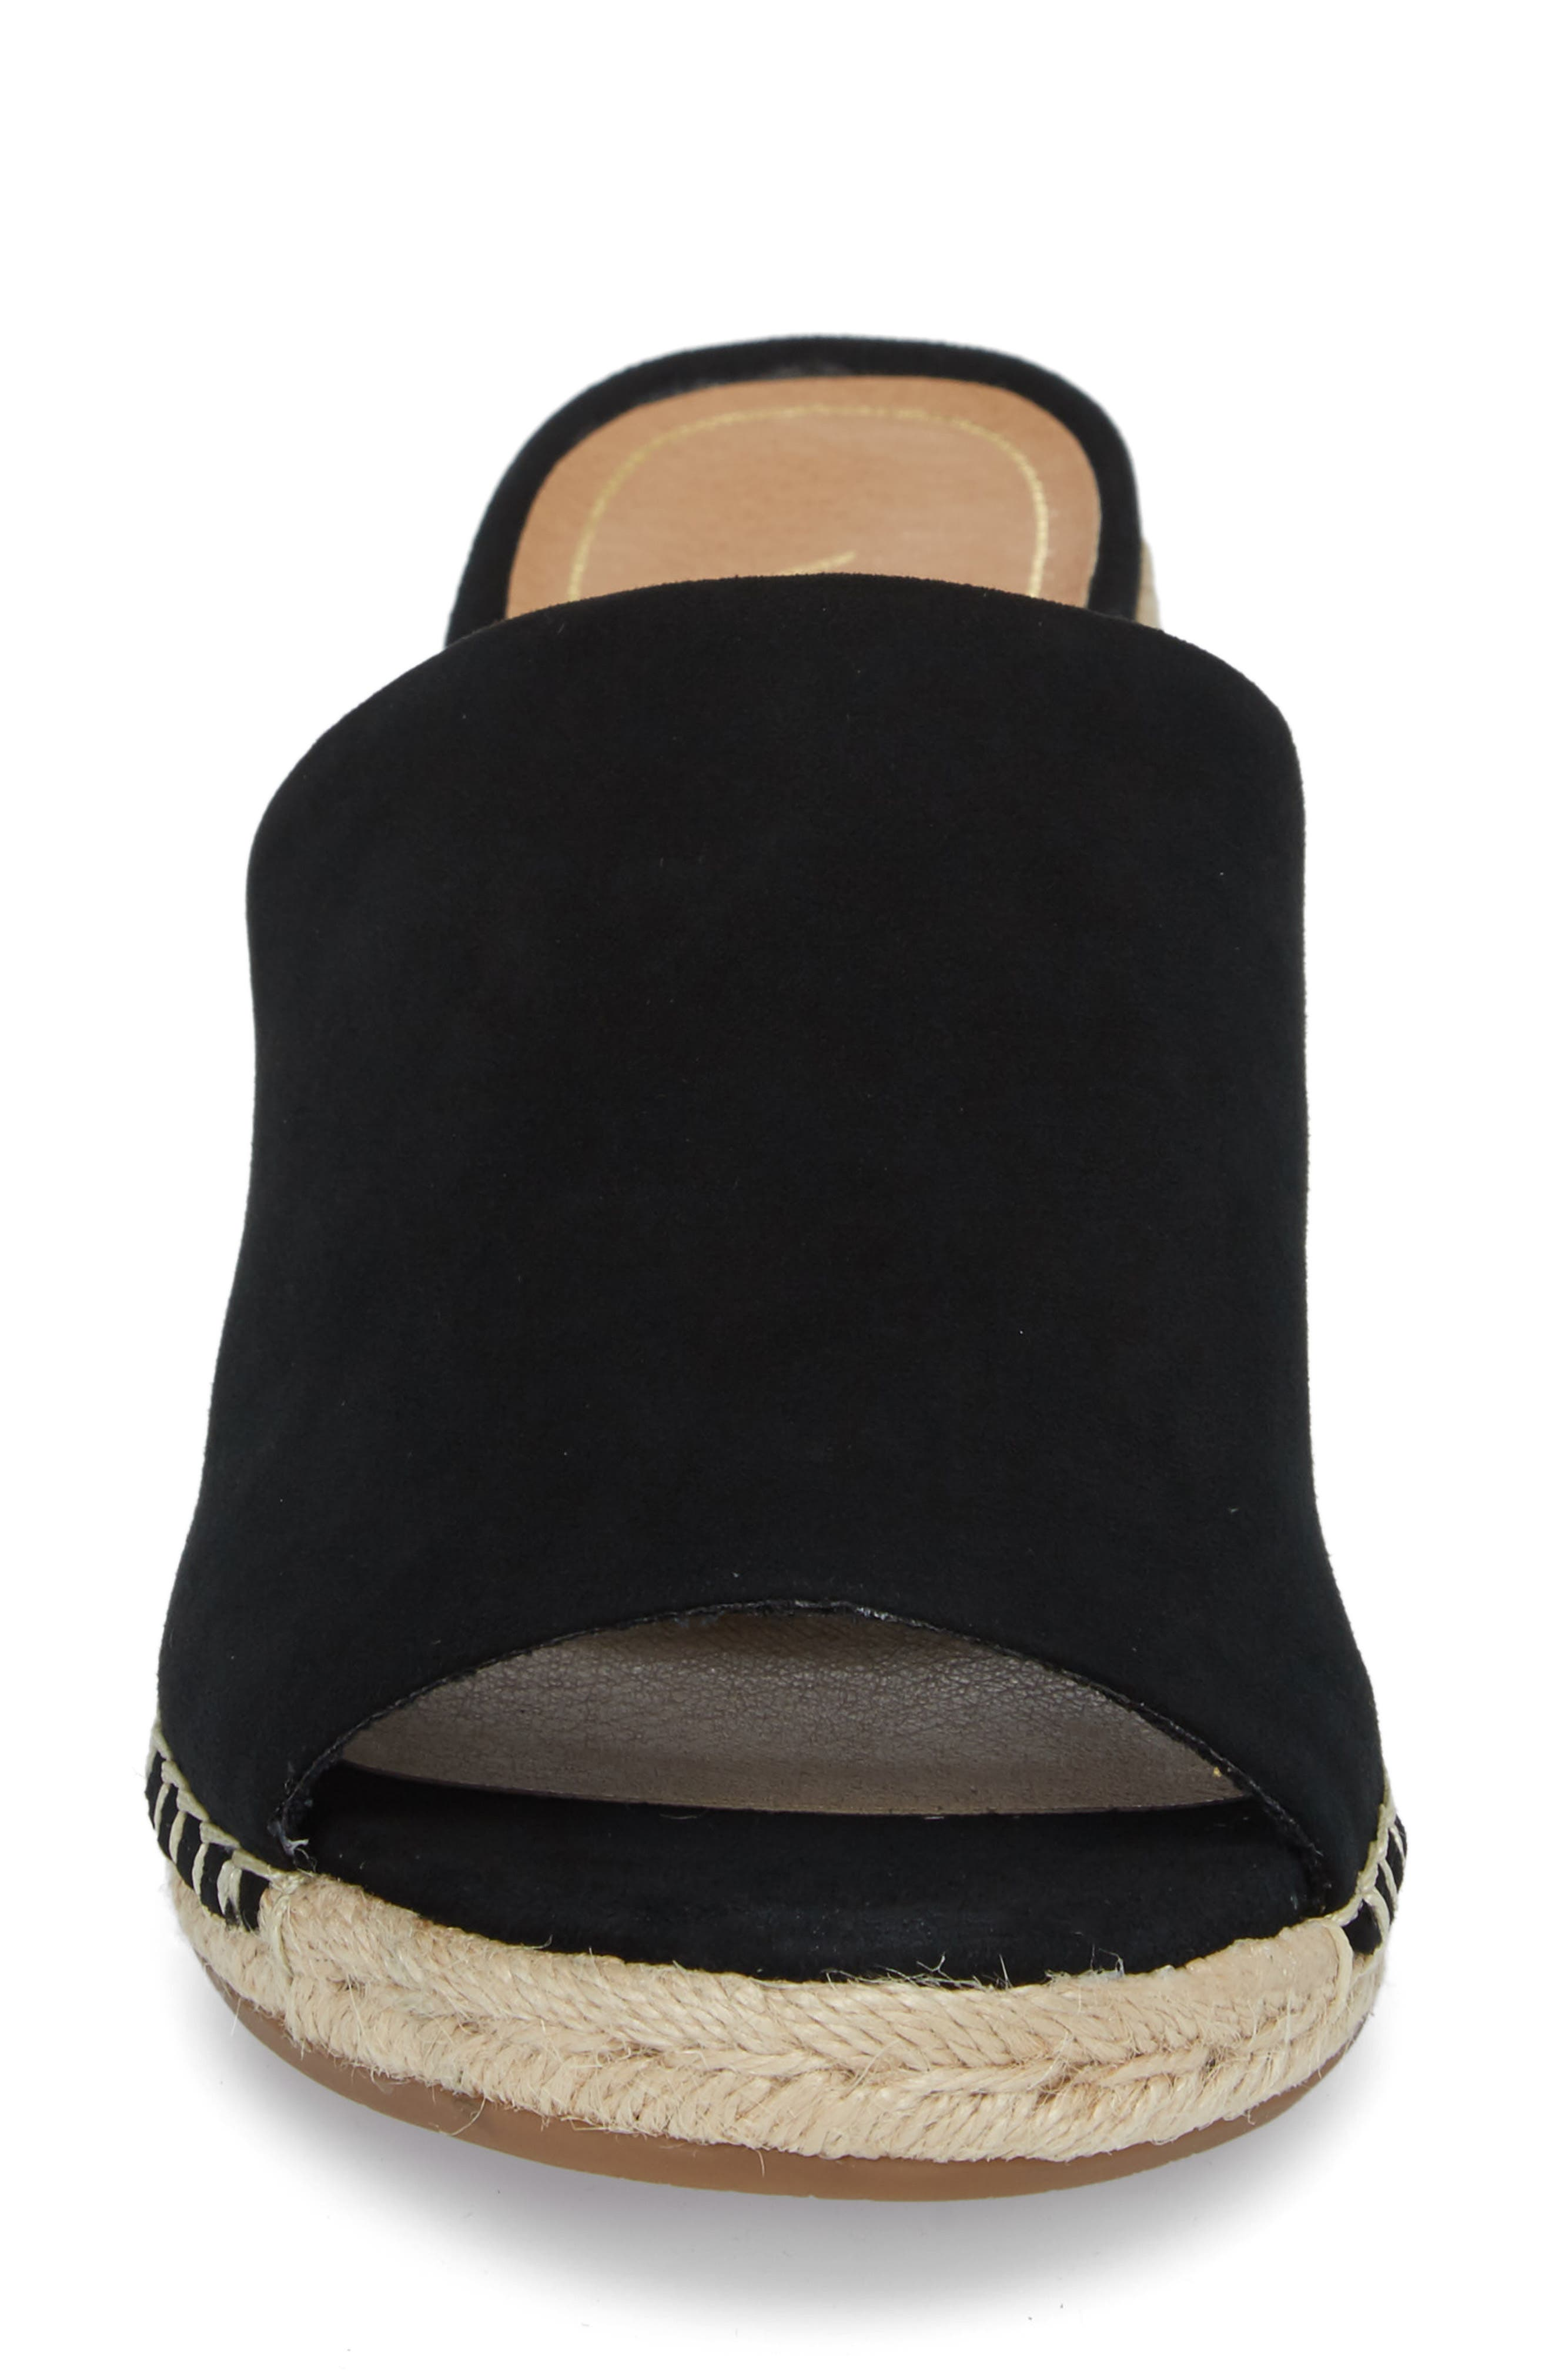 Kadyn Espadrille Wedge Sandal,                             Alternate thumbnail 4, color,                             BLACK SUEDE